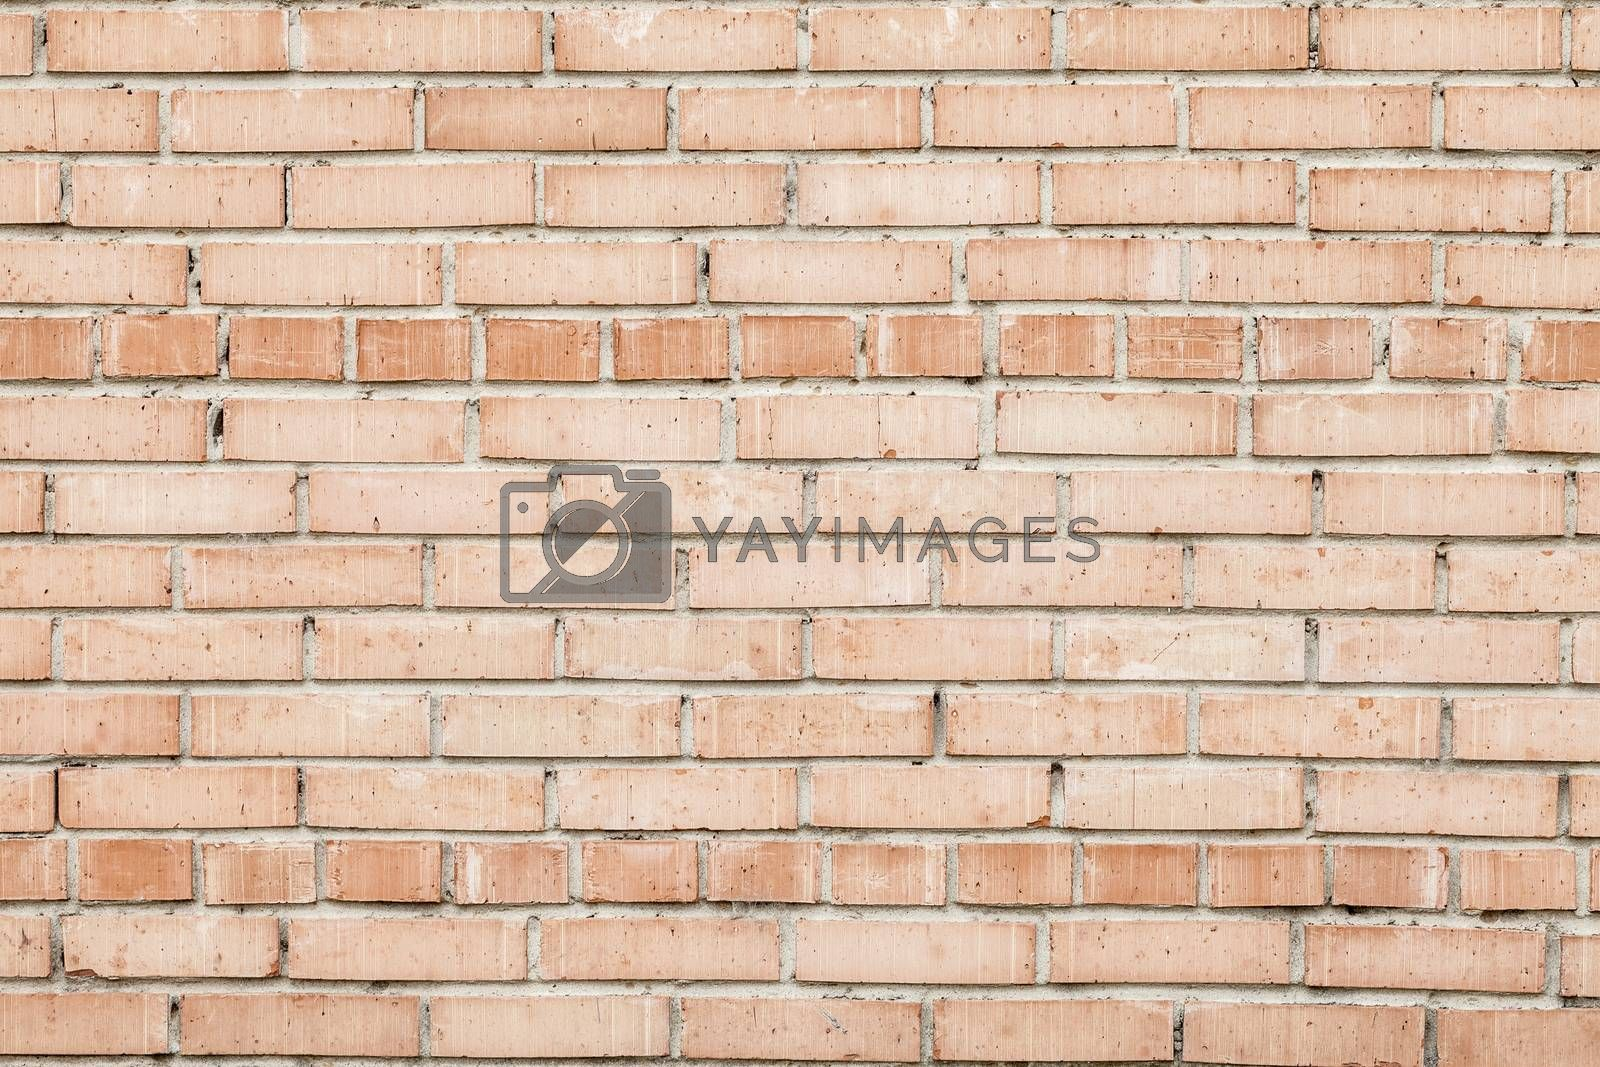 Royalty free image of Weathered Old Red Brick Wall by H2Oshka